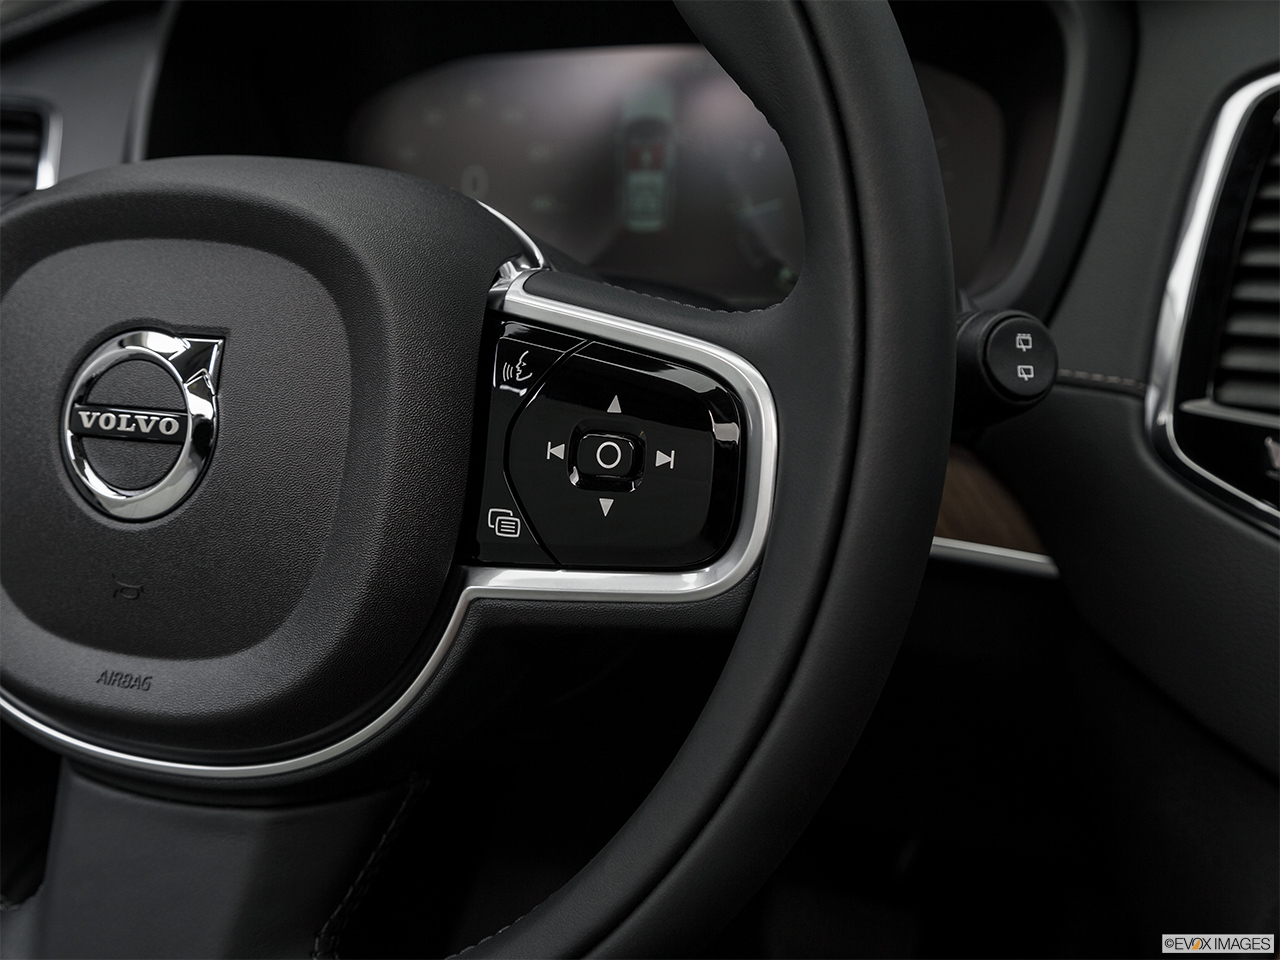 2019 Volvo XC90  T6 Inscription Steering Wheel Controls (Right Side)